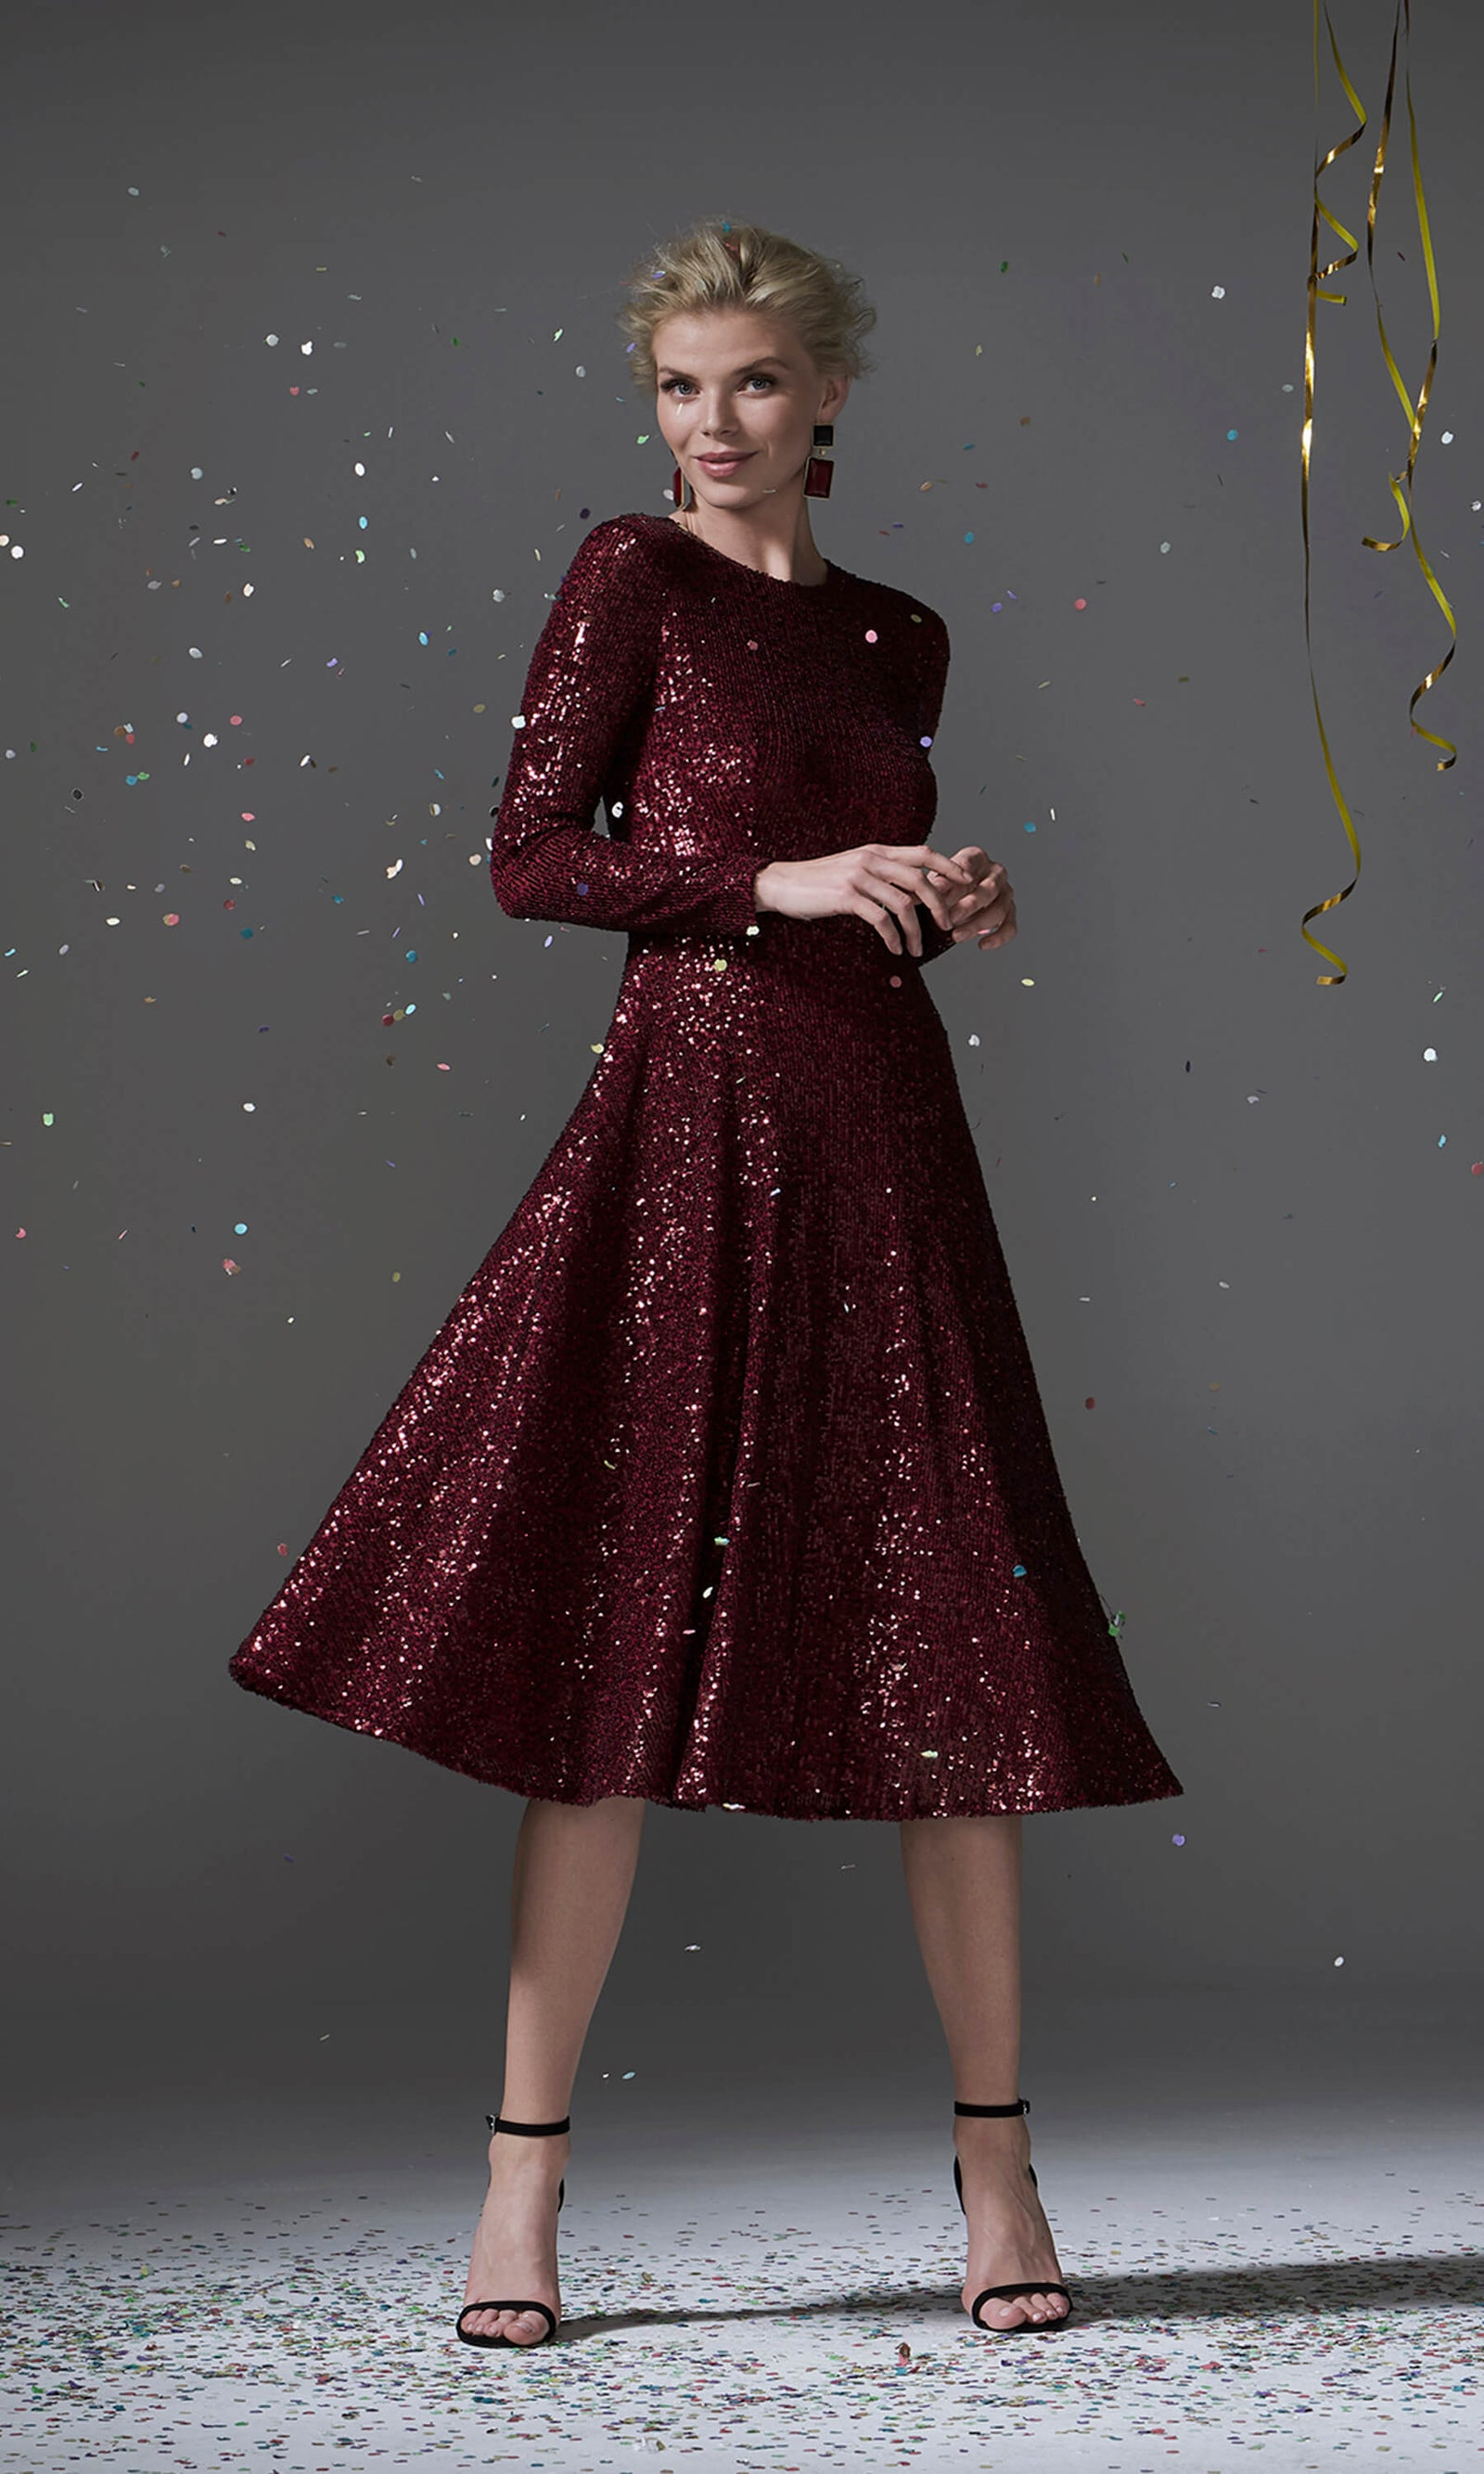 96096 Dark Red Carla Ruiz Sequin Party Dress With Sleeves - Fab Frocks